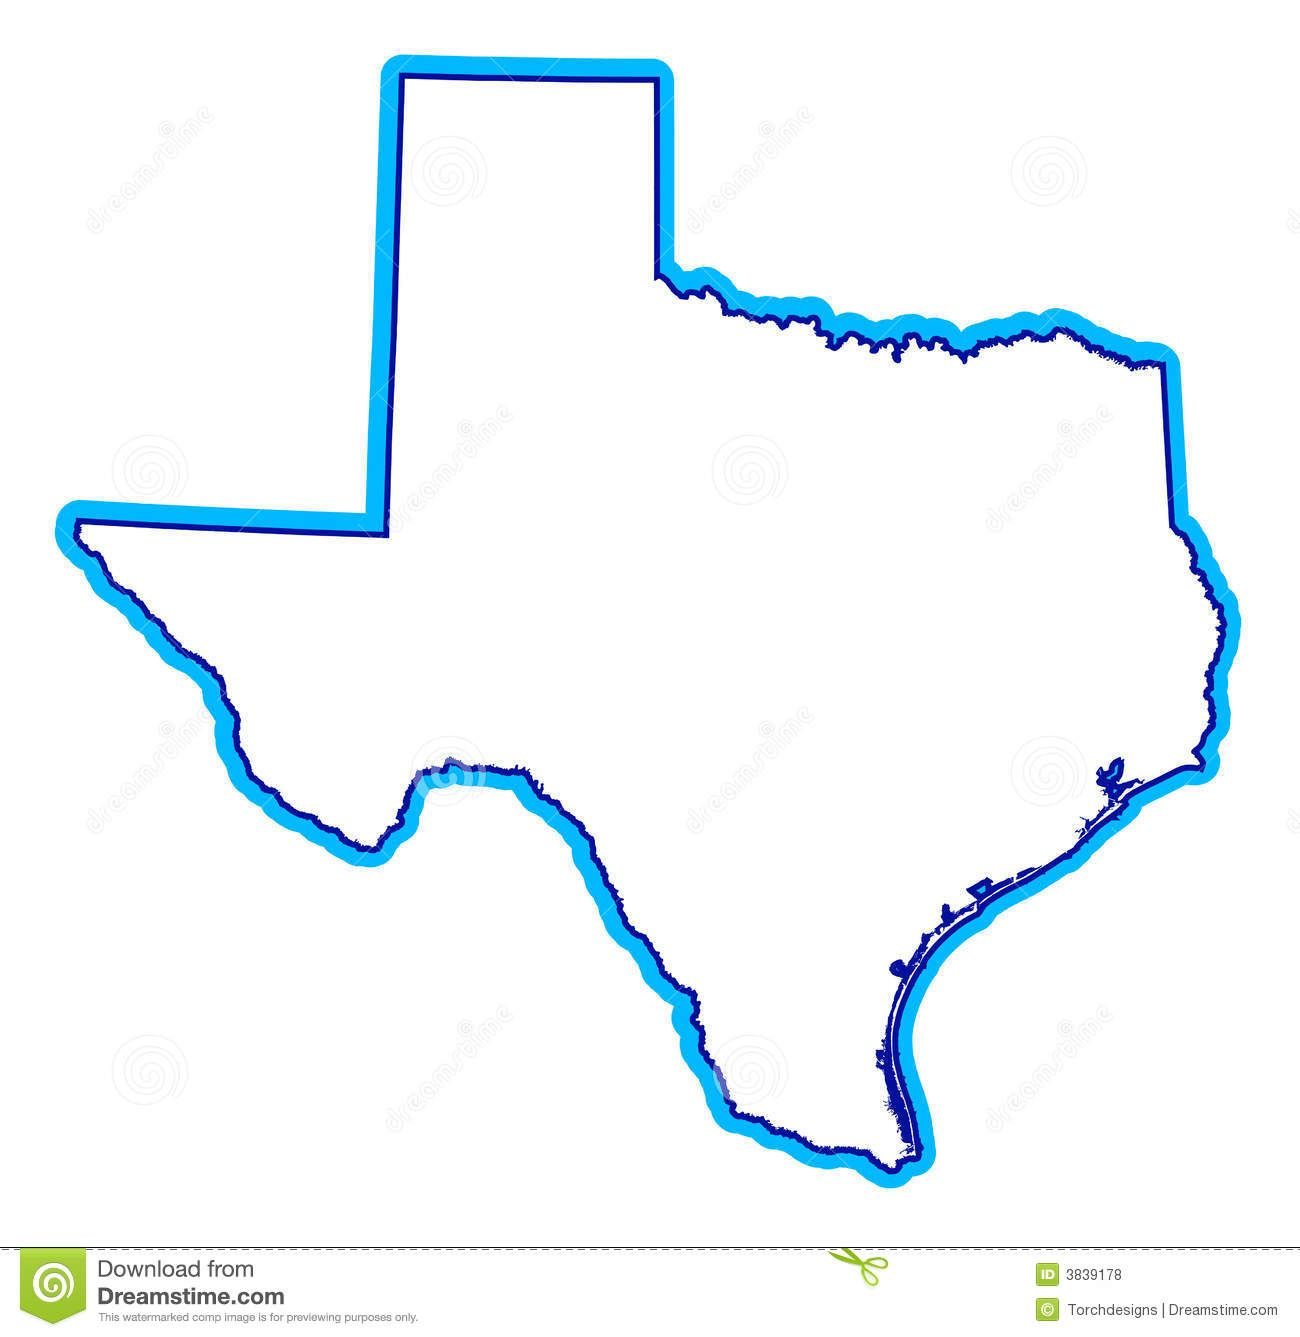 Drawing of state of Texas | Stencils | Pinterest | Texas, Stenciling ...